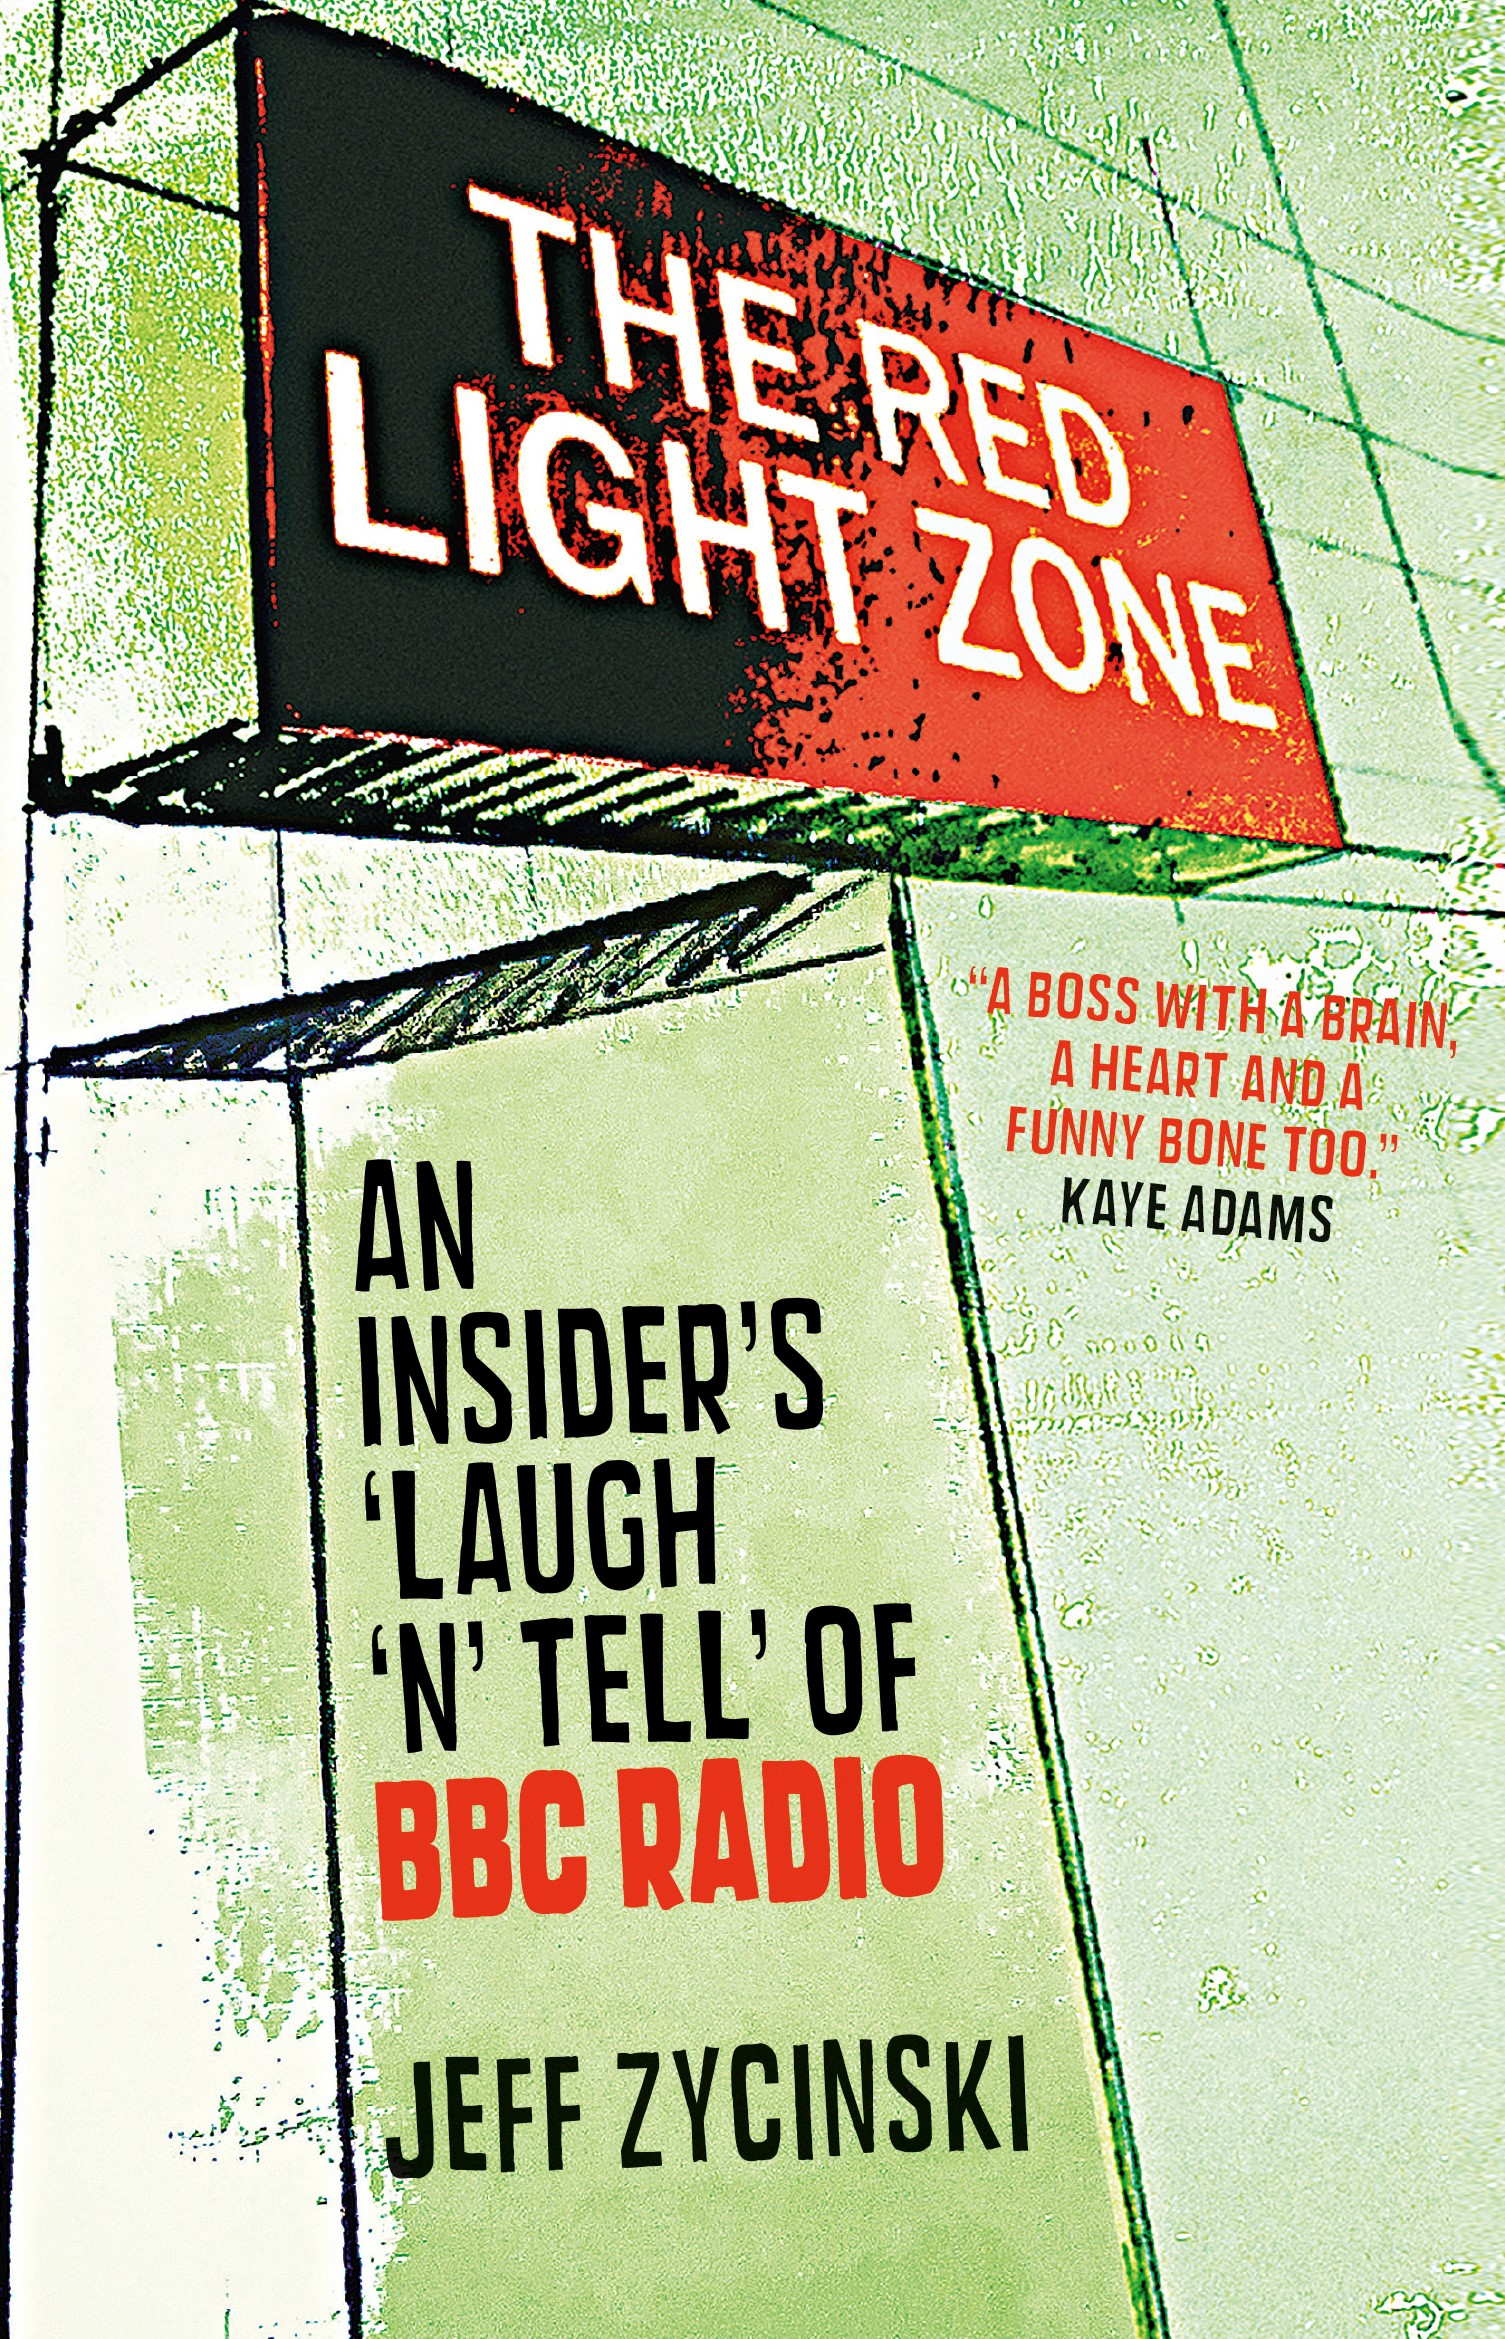 An Interview with Jeff Zycinski - The Red Light Zone